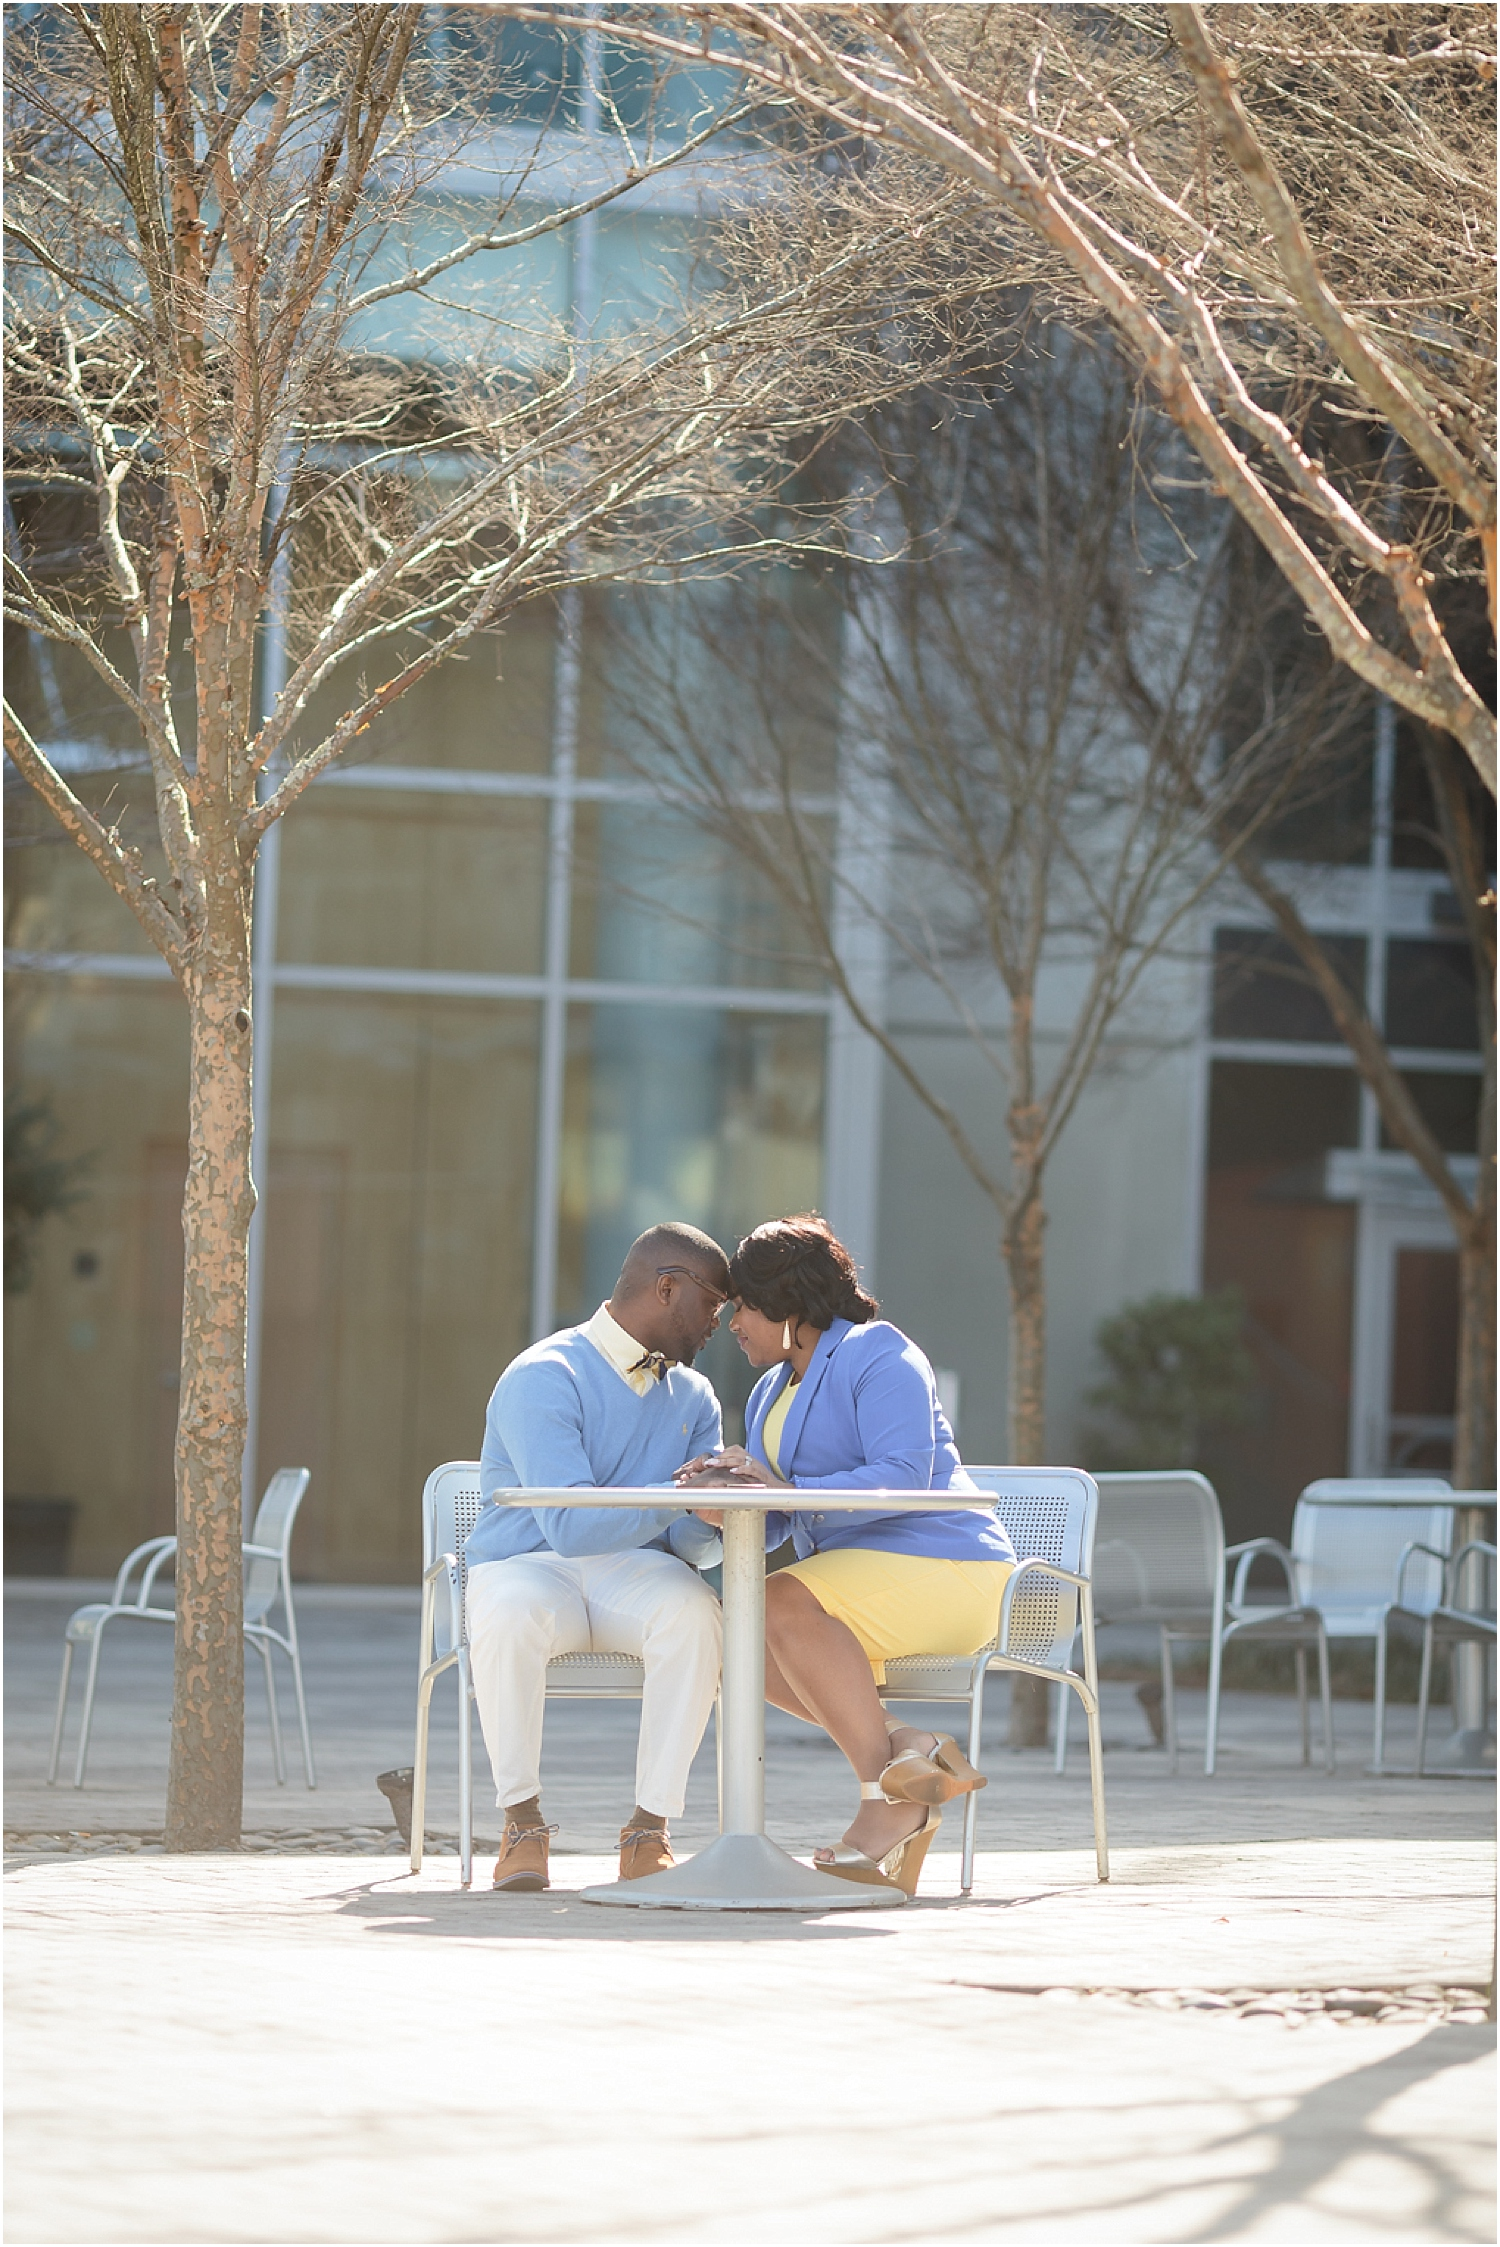 20150131-engagement-outdoor-winter-greenville-2_blog.jpg